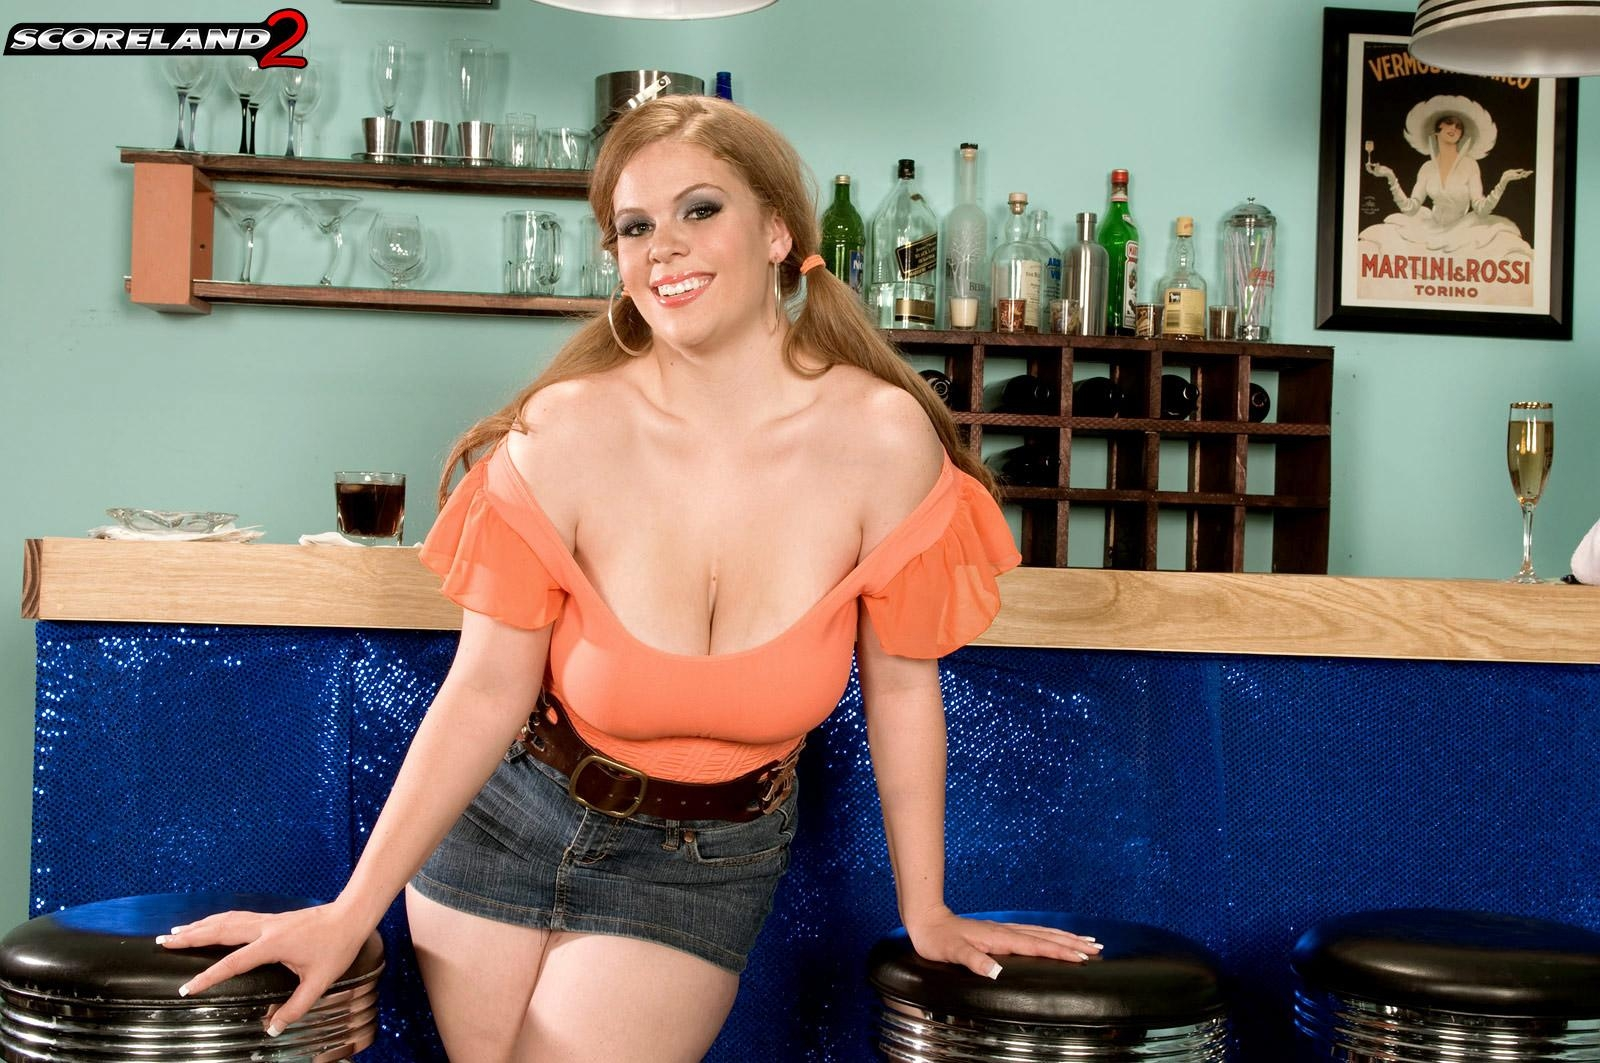 Solo girl Jessica Taylor whips out her big boobs at the bar with hair up in pigtails